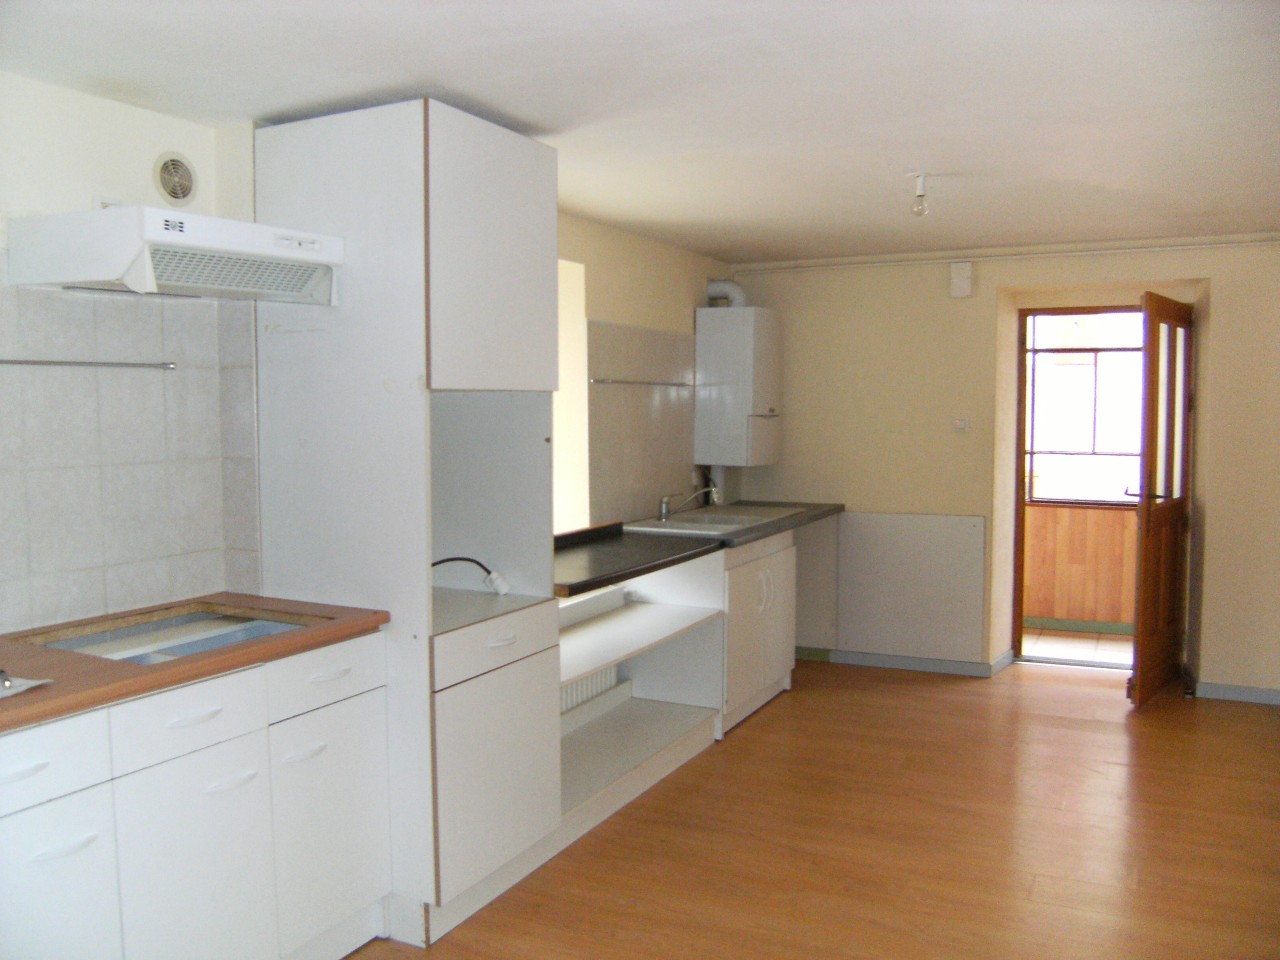 Agence immobili re g rardmer annonce appartements n 2160 for Agence immobiliere gerardmer